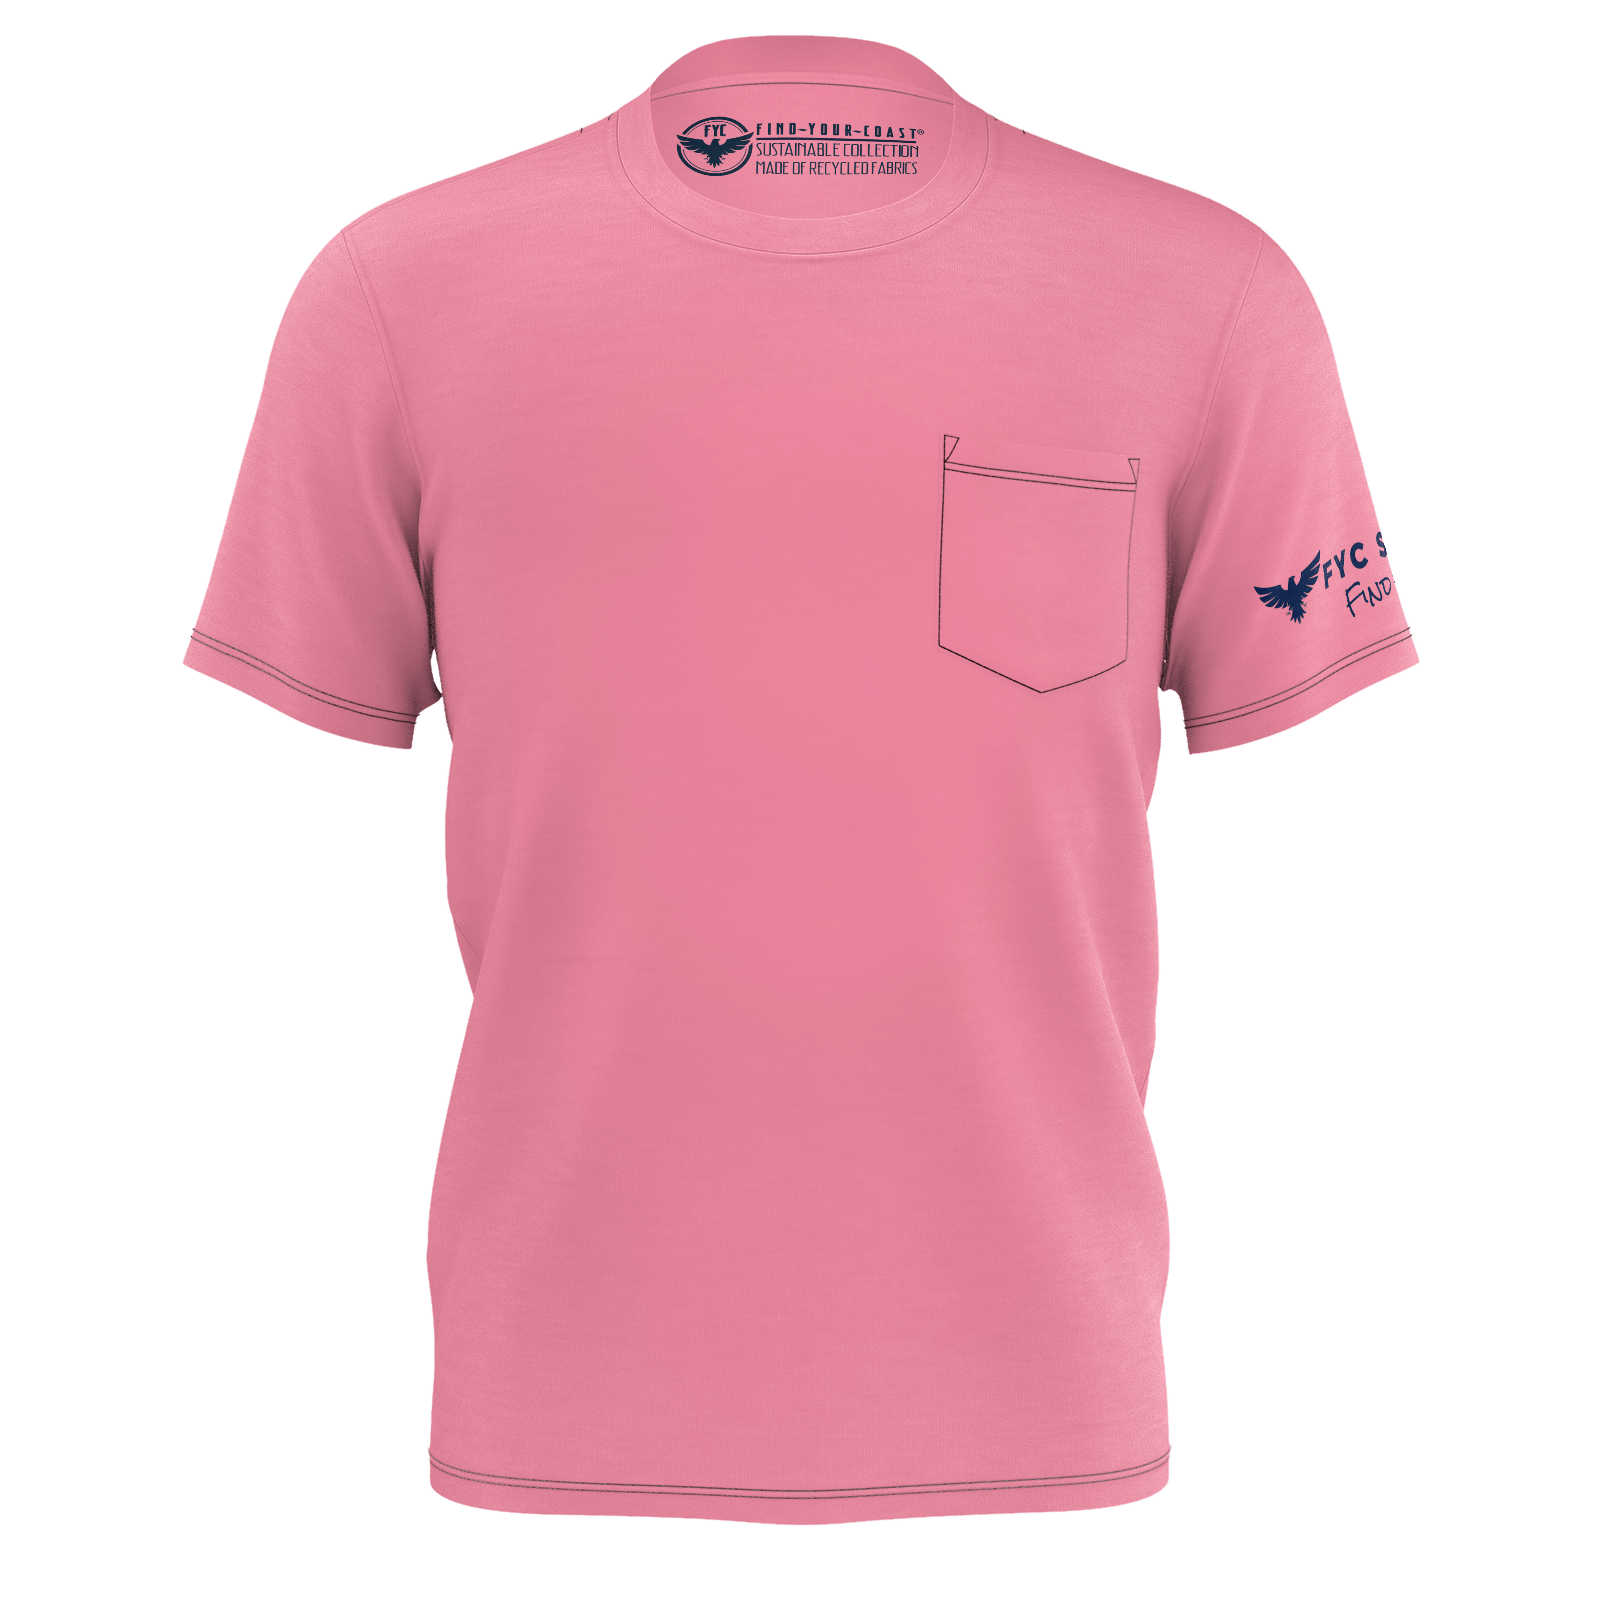 Men's Sunset Pink Sustainable Charter Pocket Tee Shirt